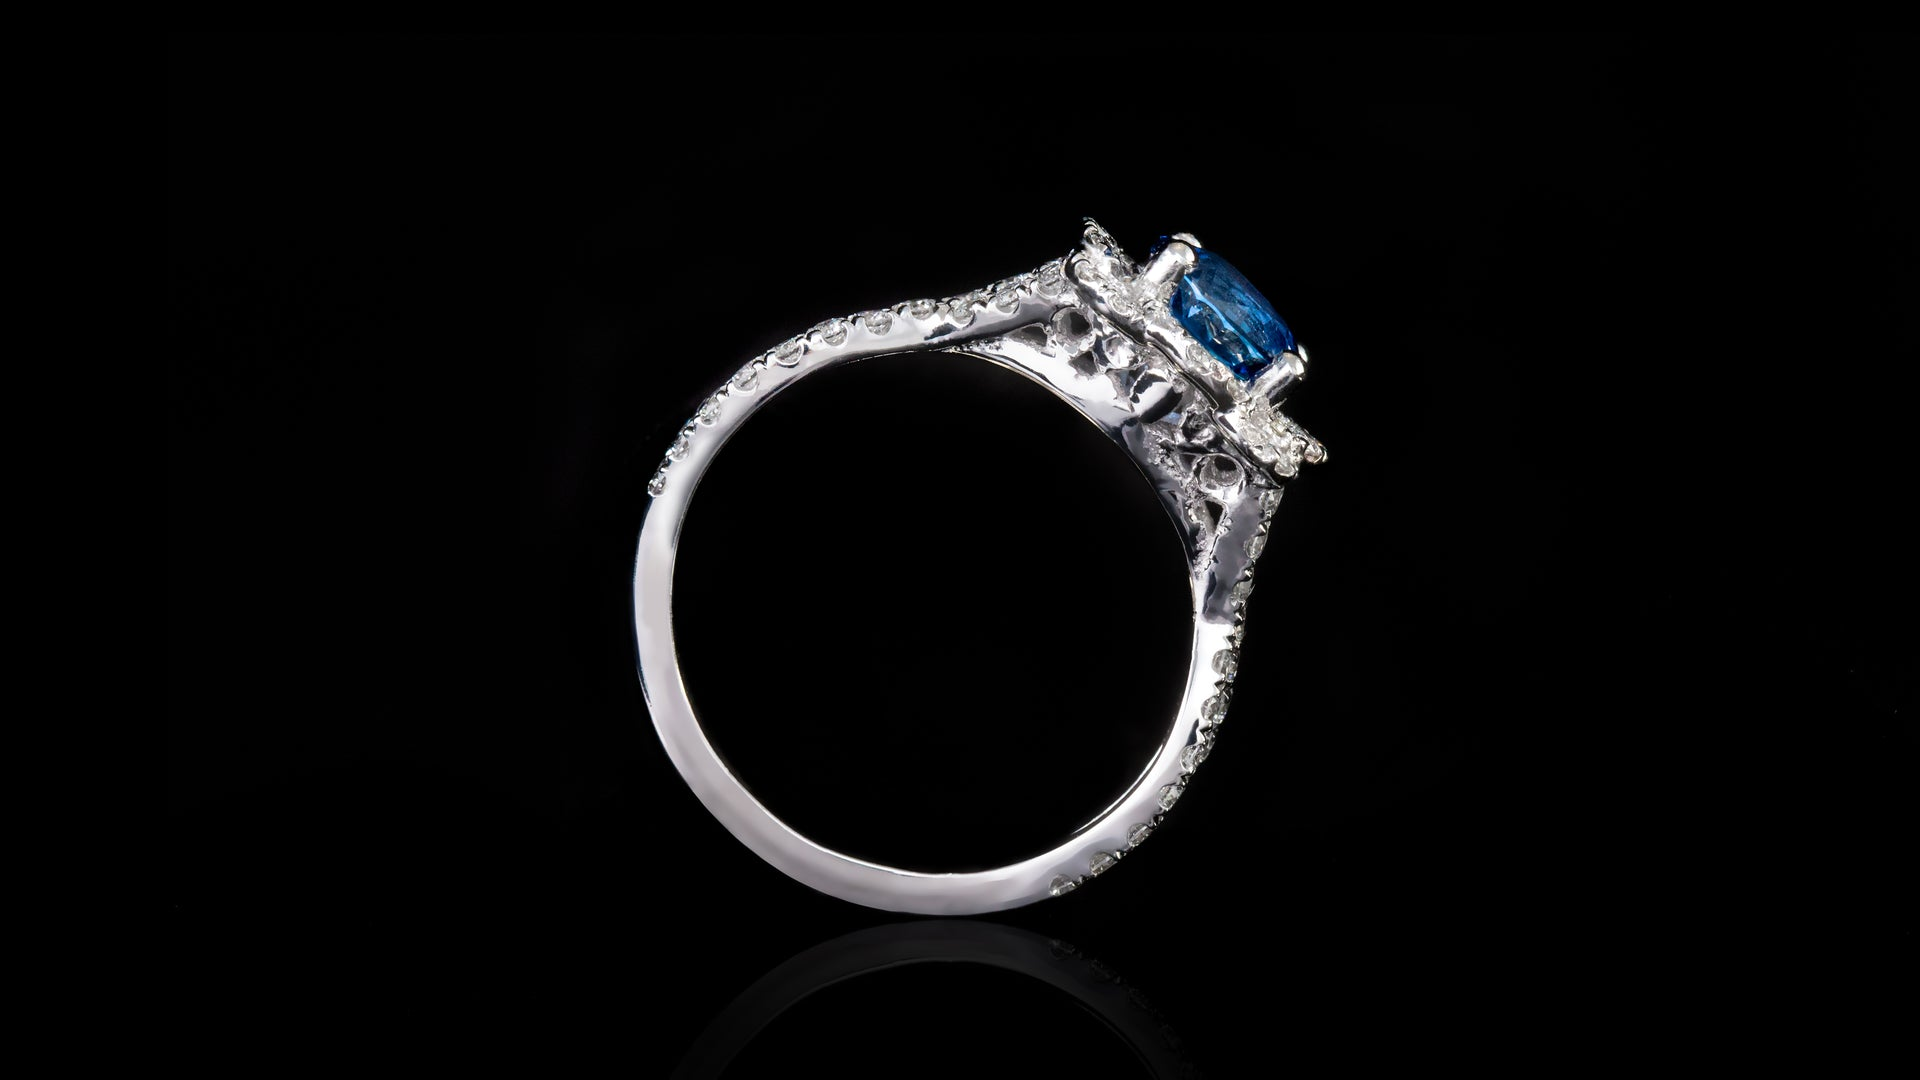 19k White Gold Braided Shank With Blue Round Sapphire Engagement Ring